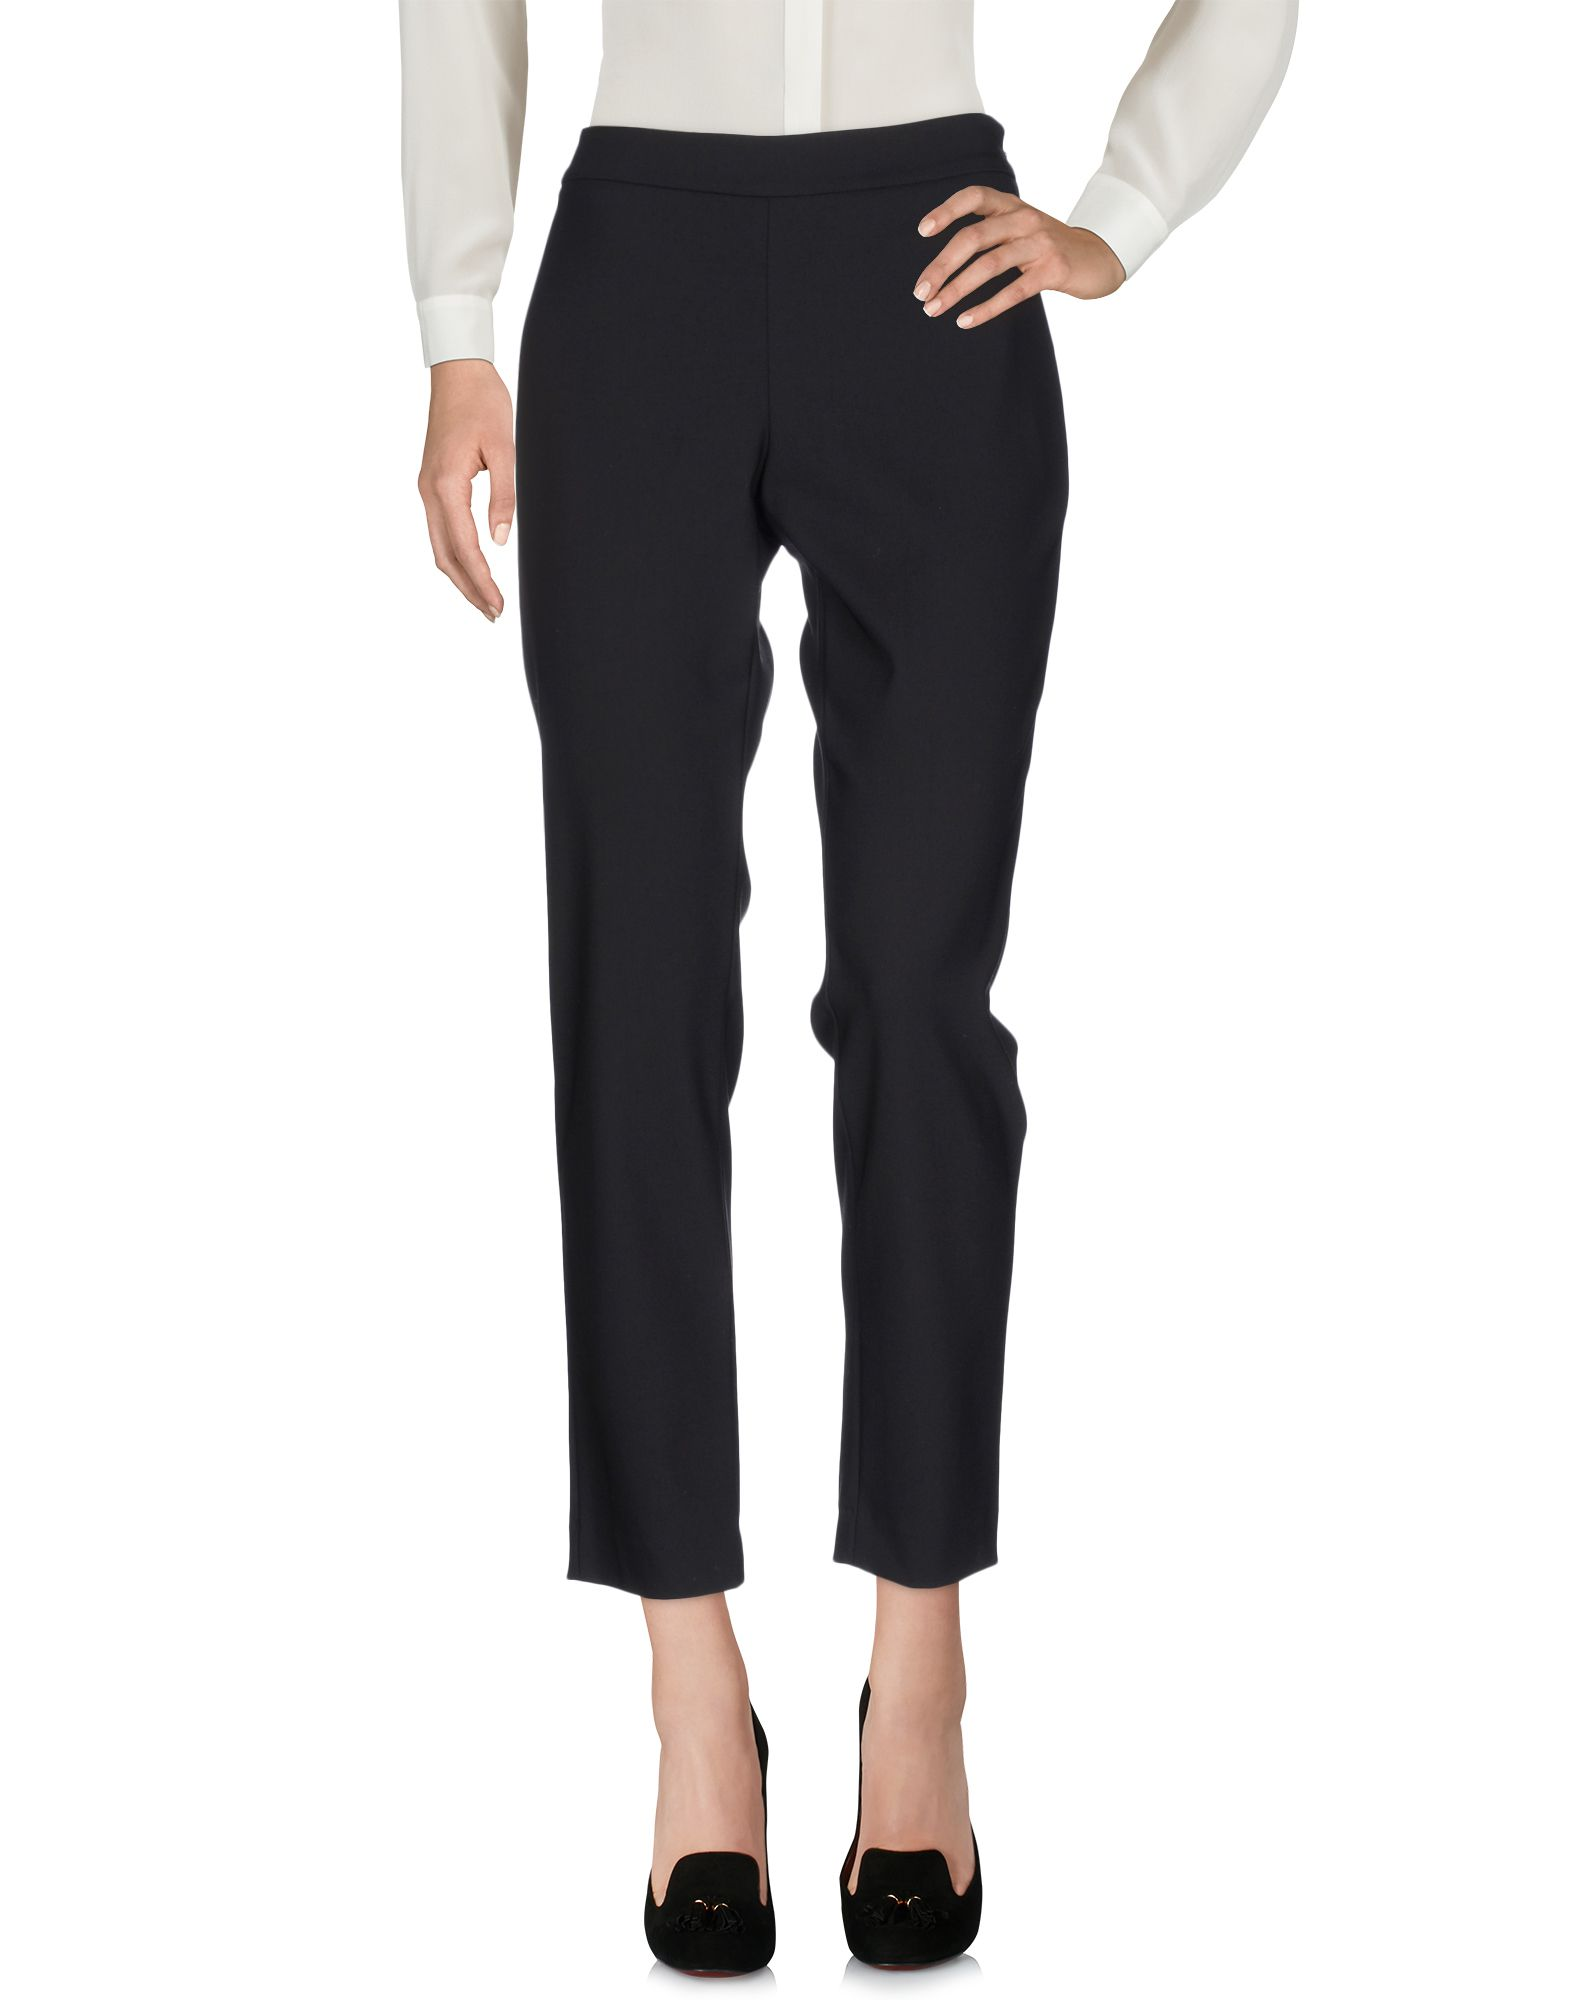 GALITZINE Casual Pants in Black